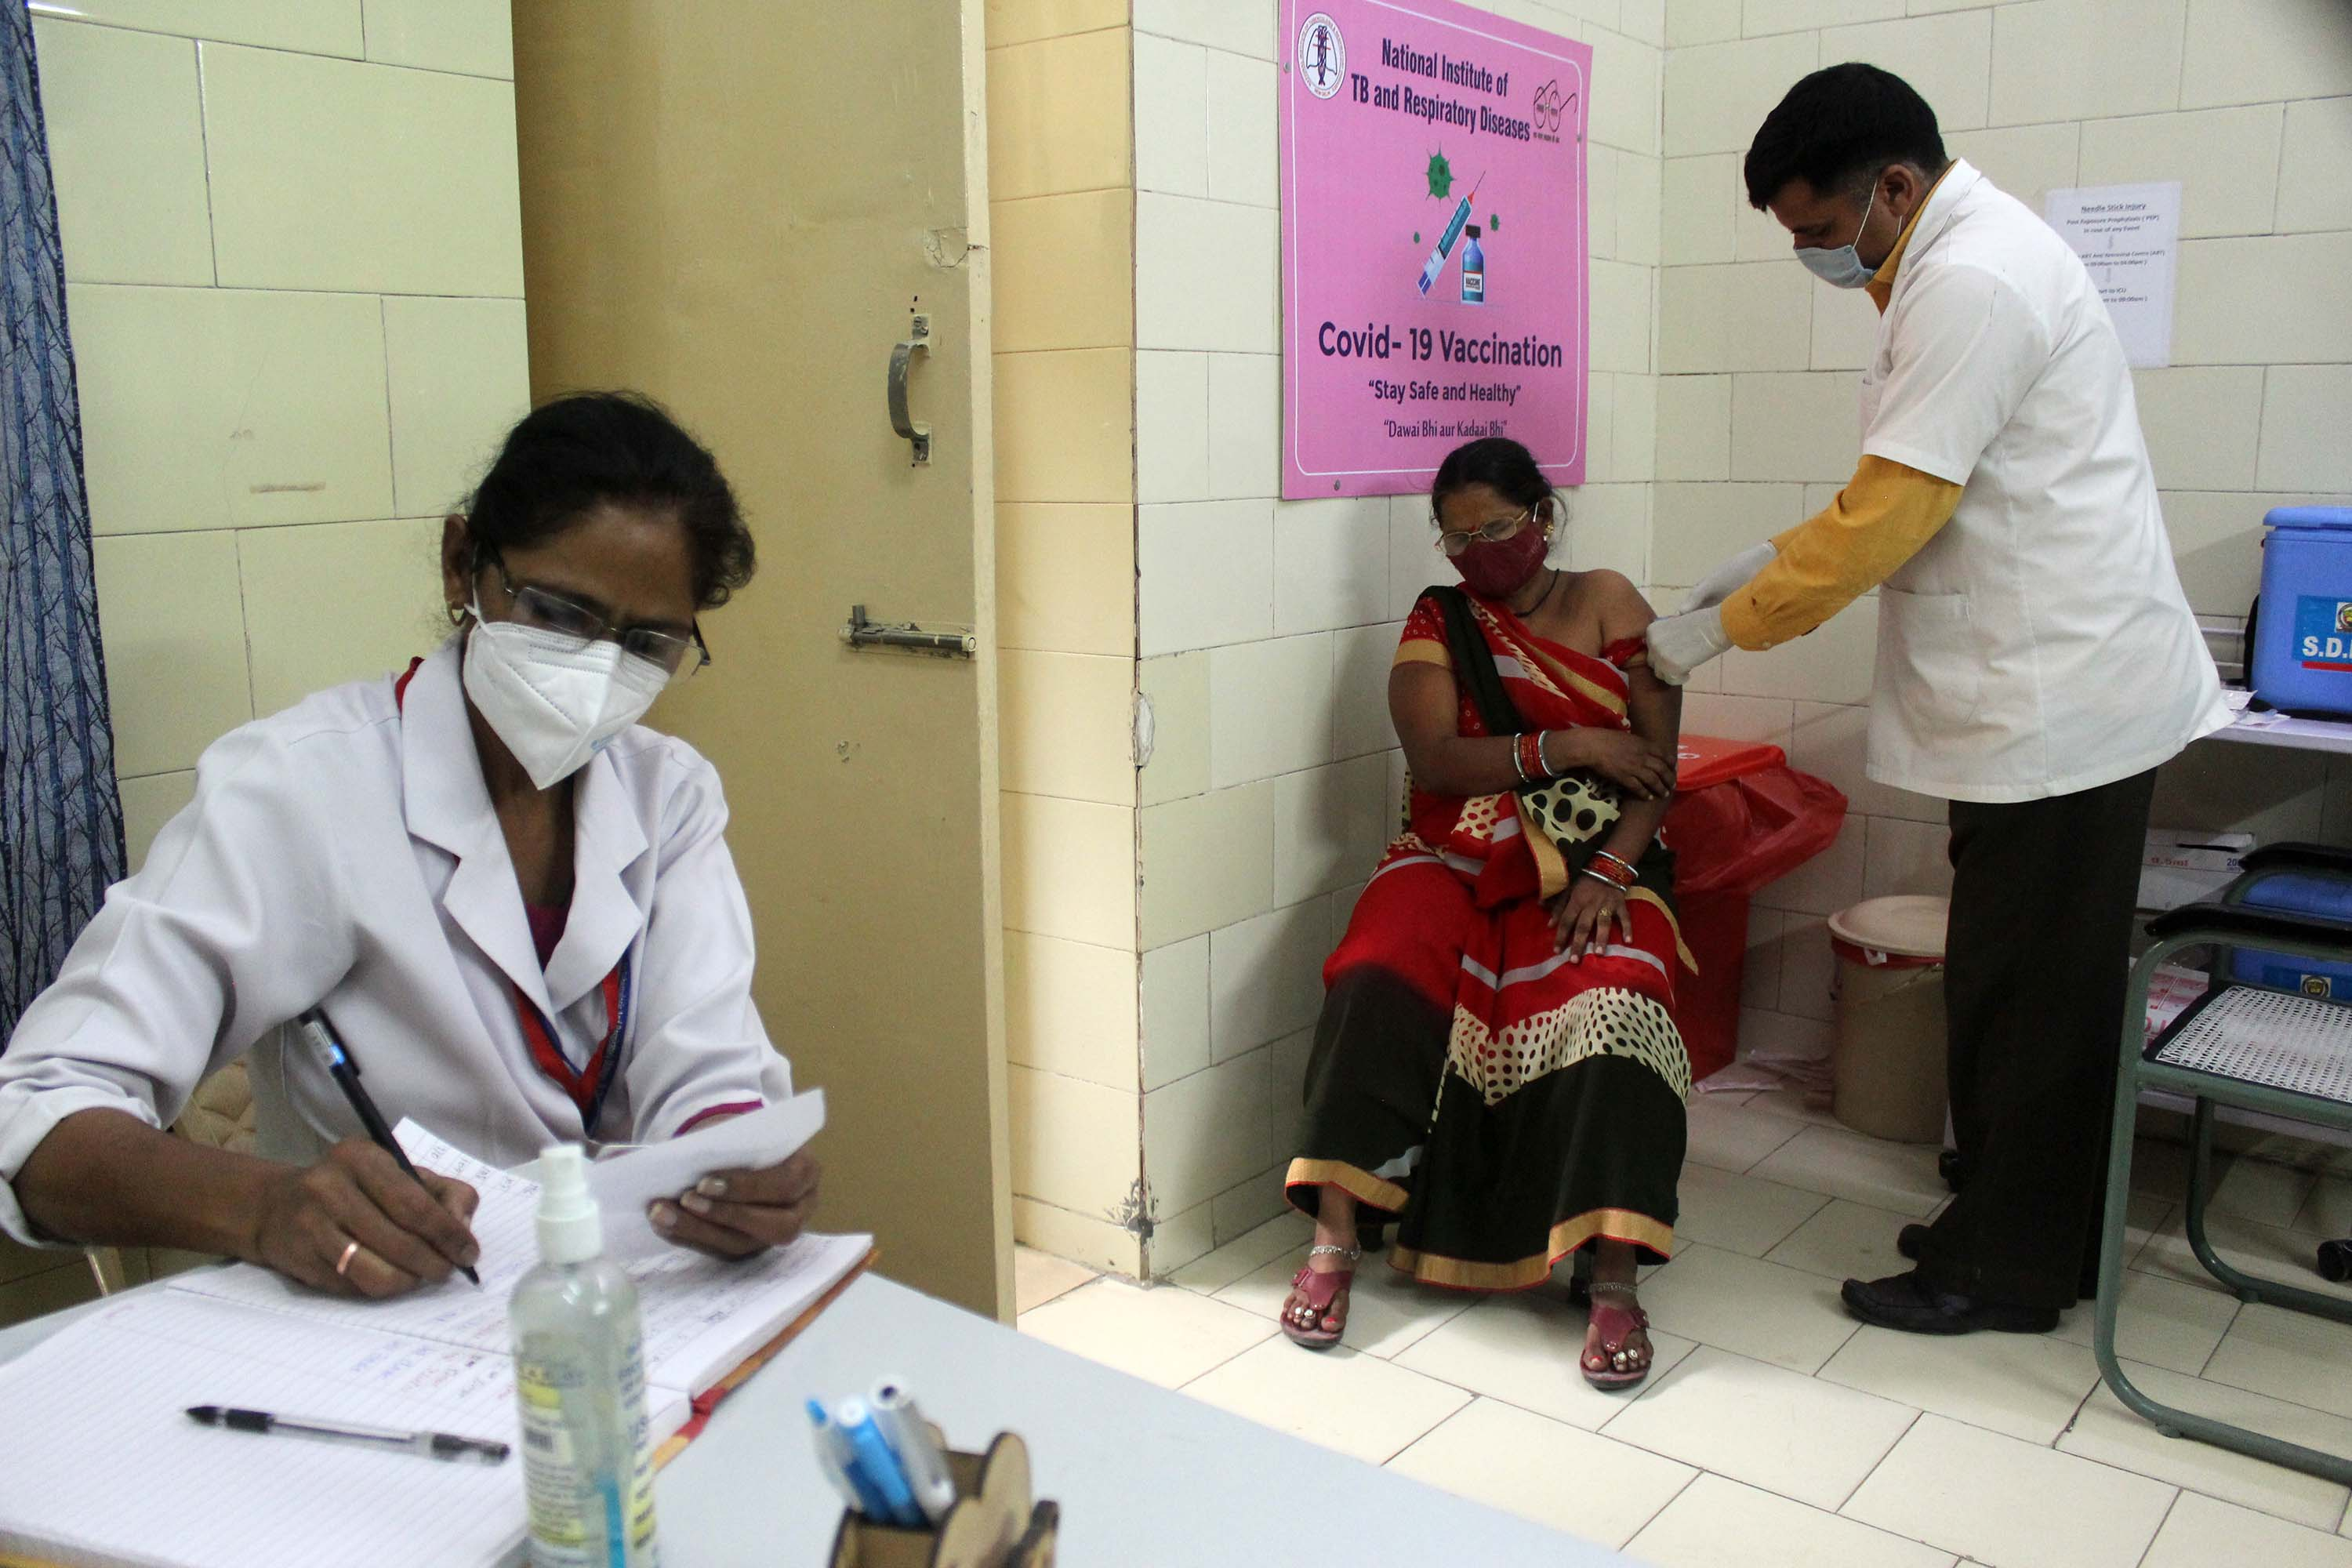 A woman receives a dose of the COVISHIELD coronavirus vaccine, manufactured by India's Serum Institute, at a government hospital in New Delhi, on April 9.